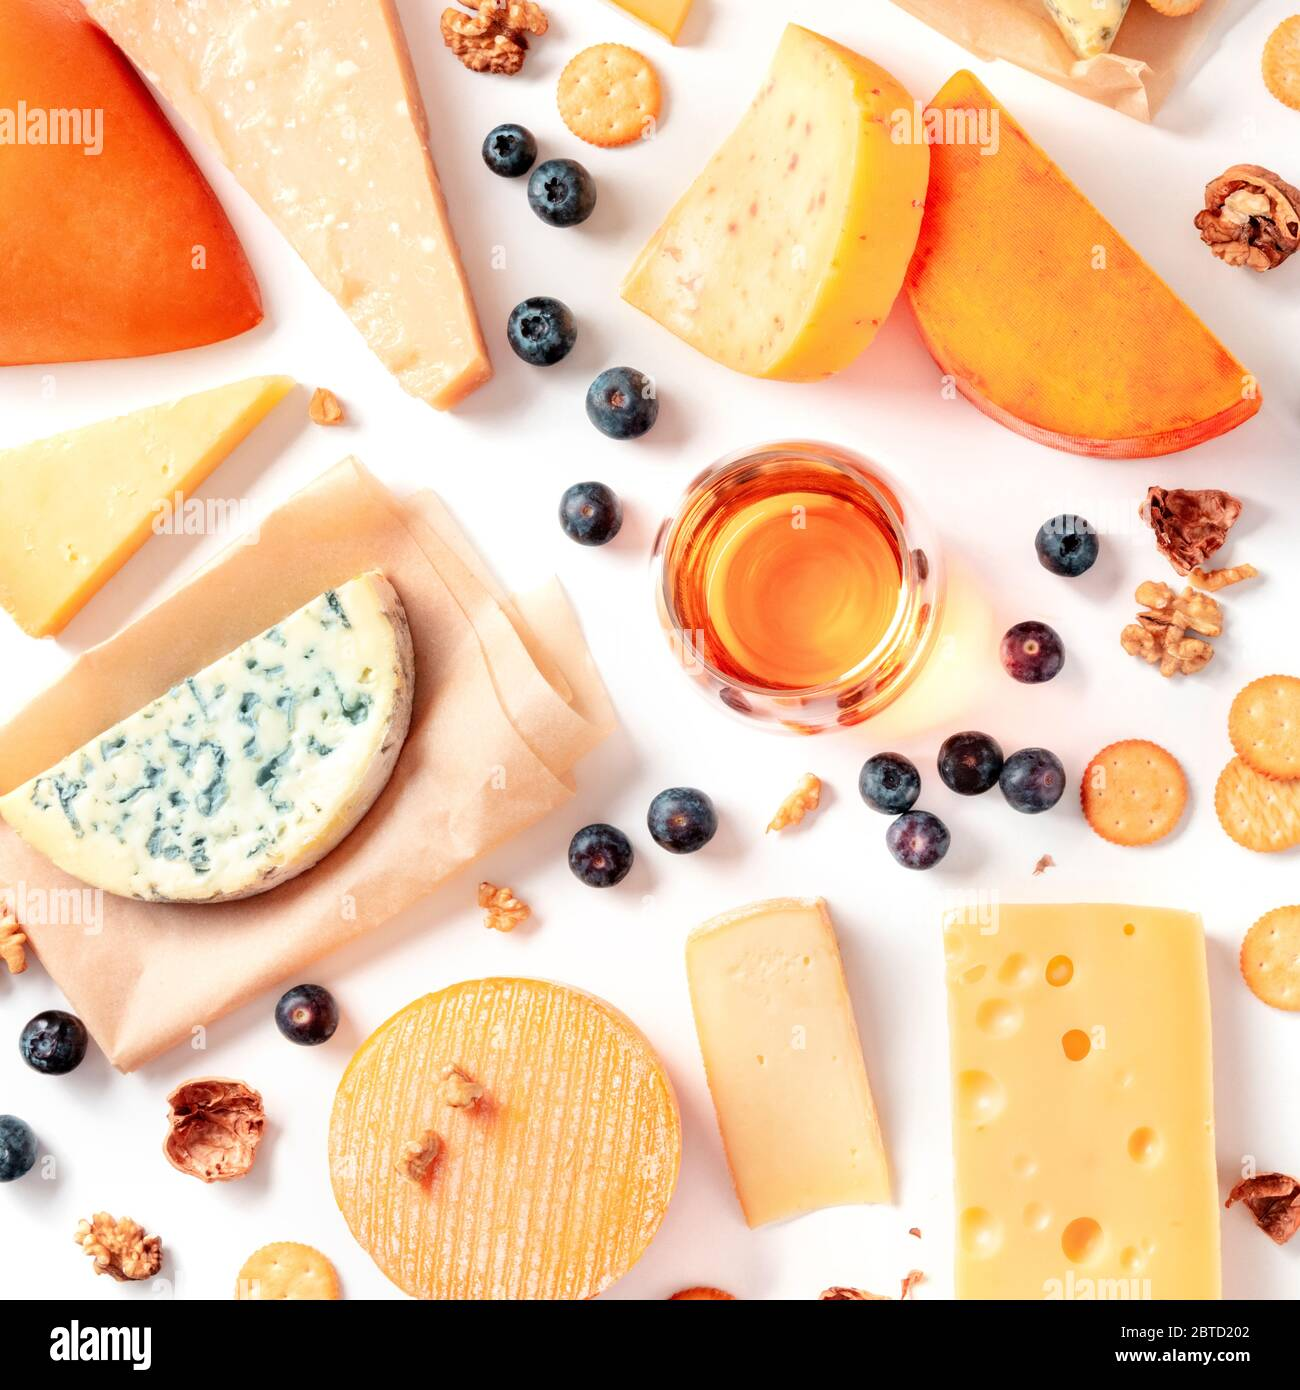 Cheese and wine tasting and pairing flat lay on a white background. Many different cheeses, overhead square shot Stock Photo